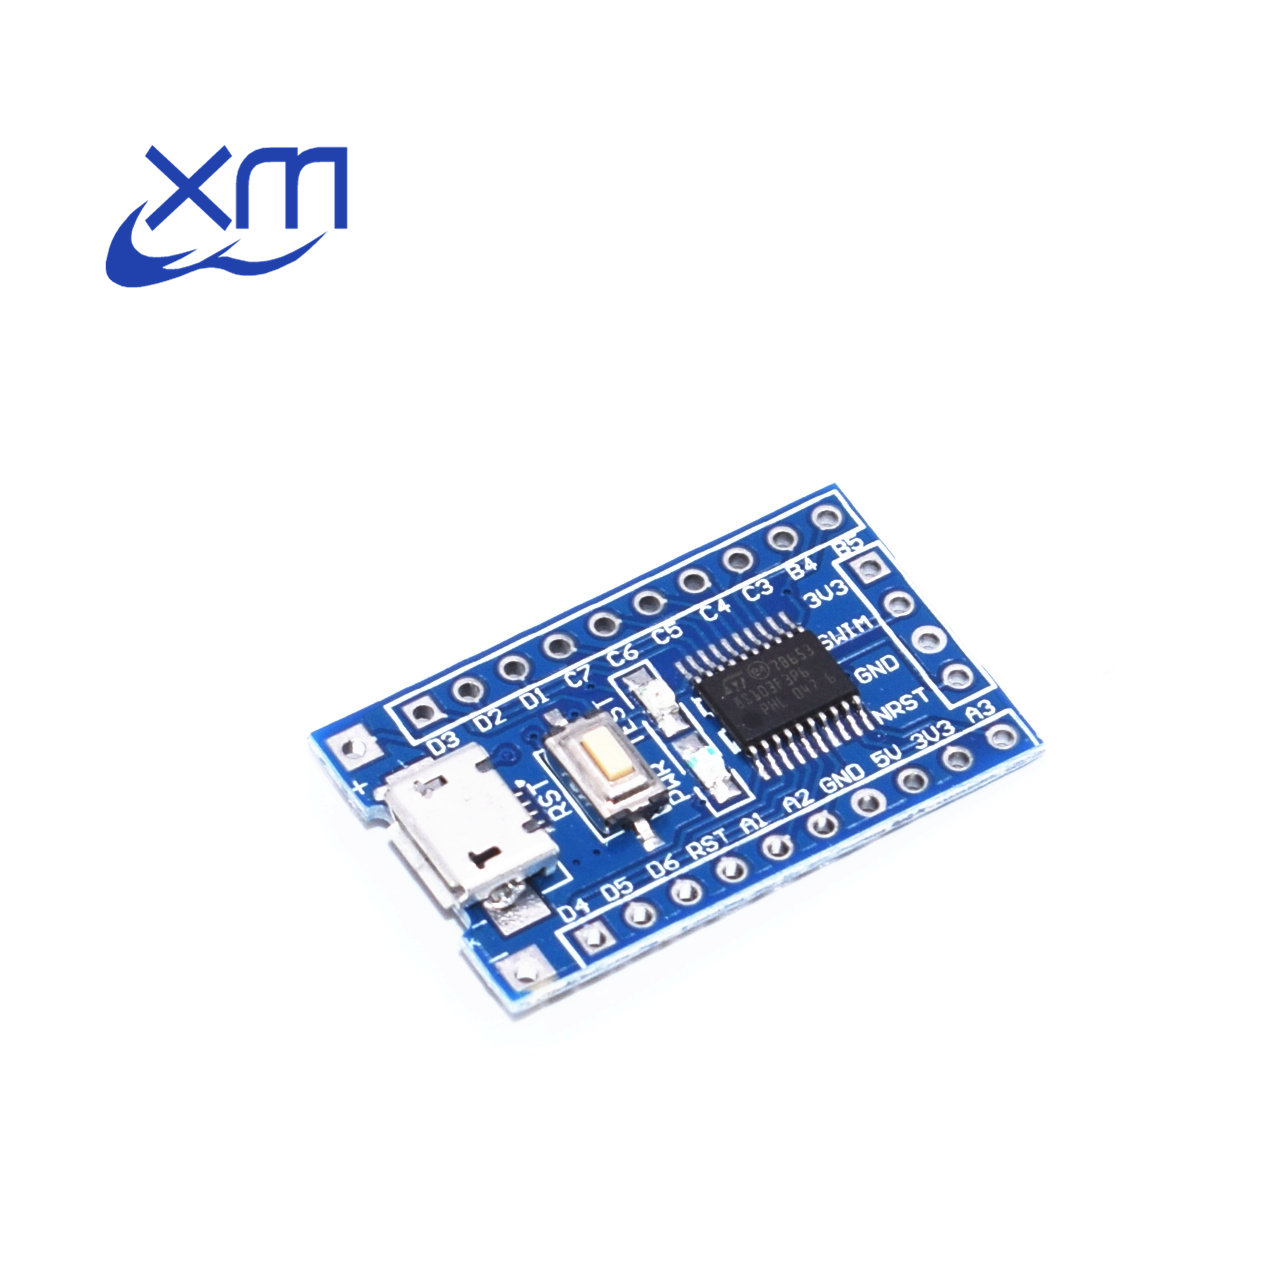 ② Big promotion for stm8s development and get free shipping - n6kmkfdc